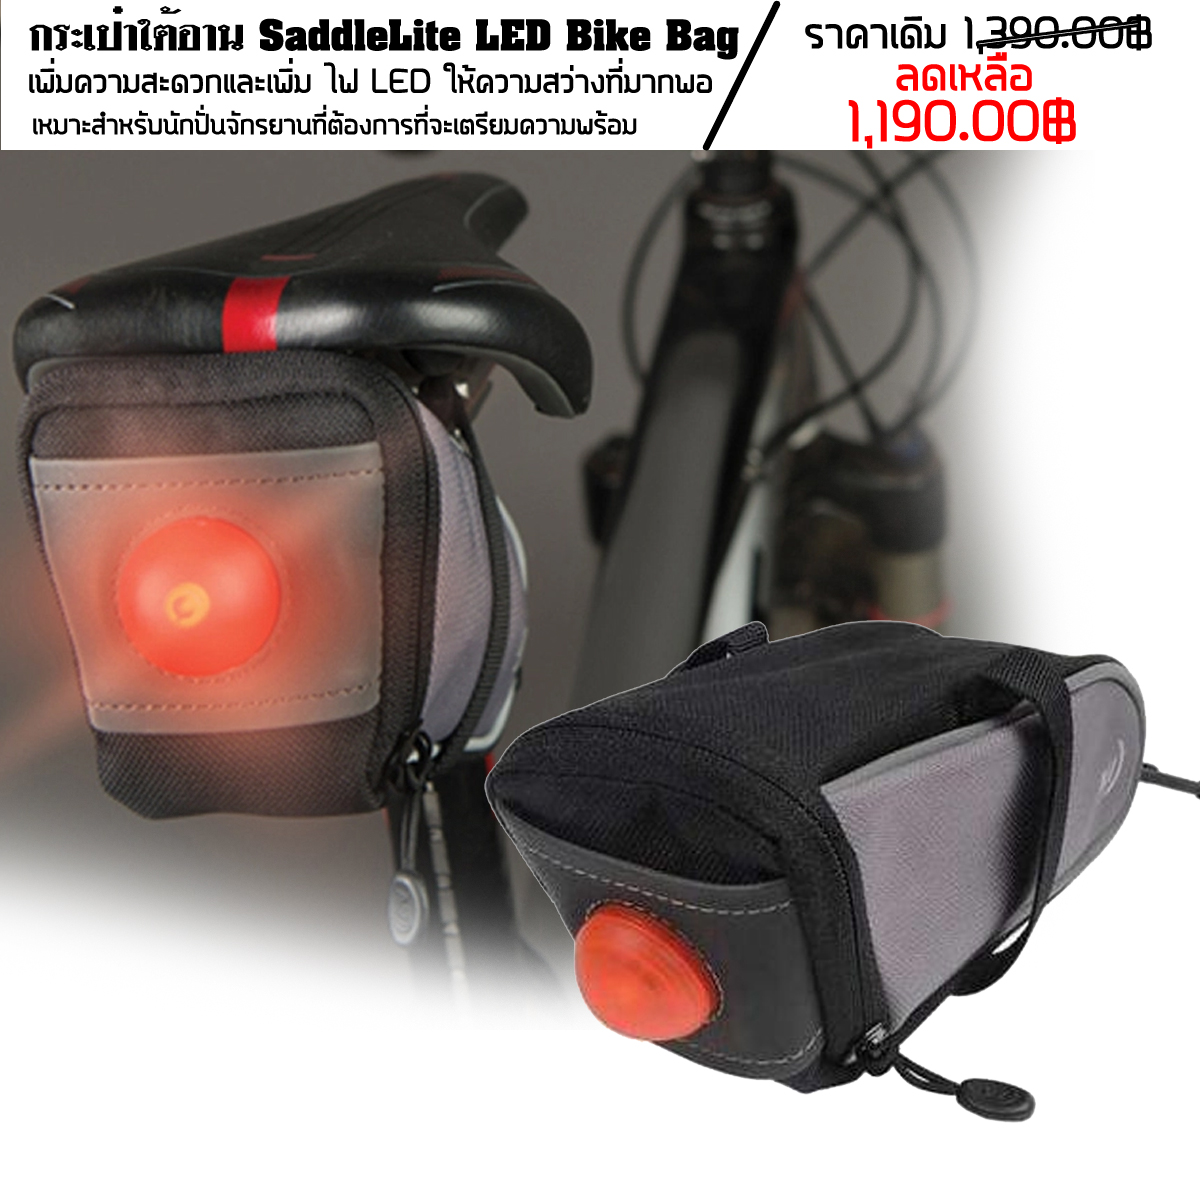 SaddleLite LED Bike Bag